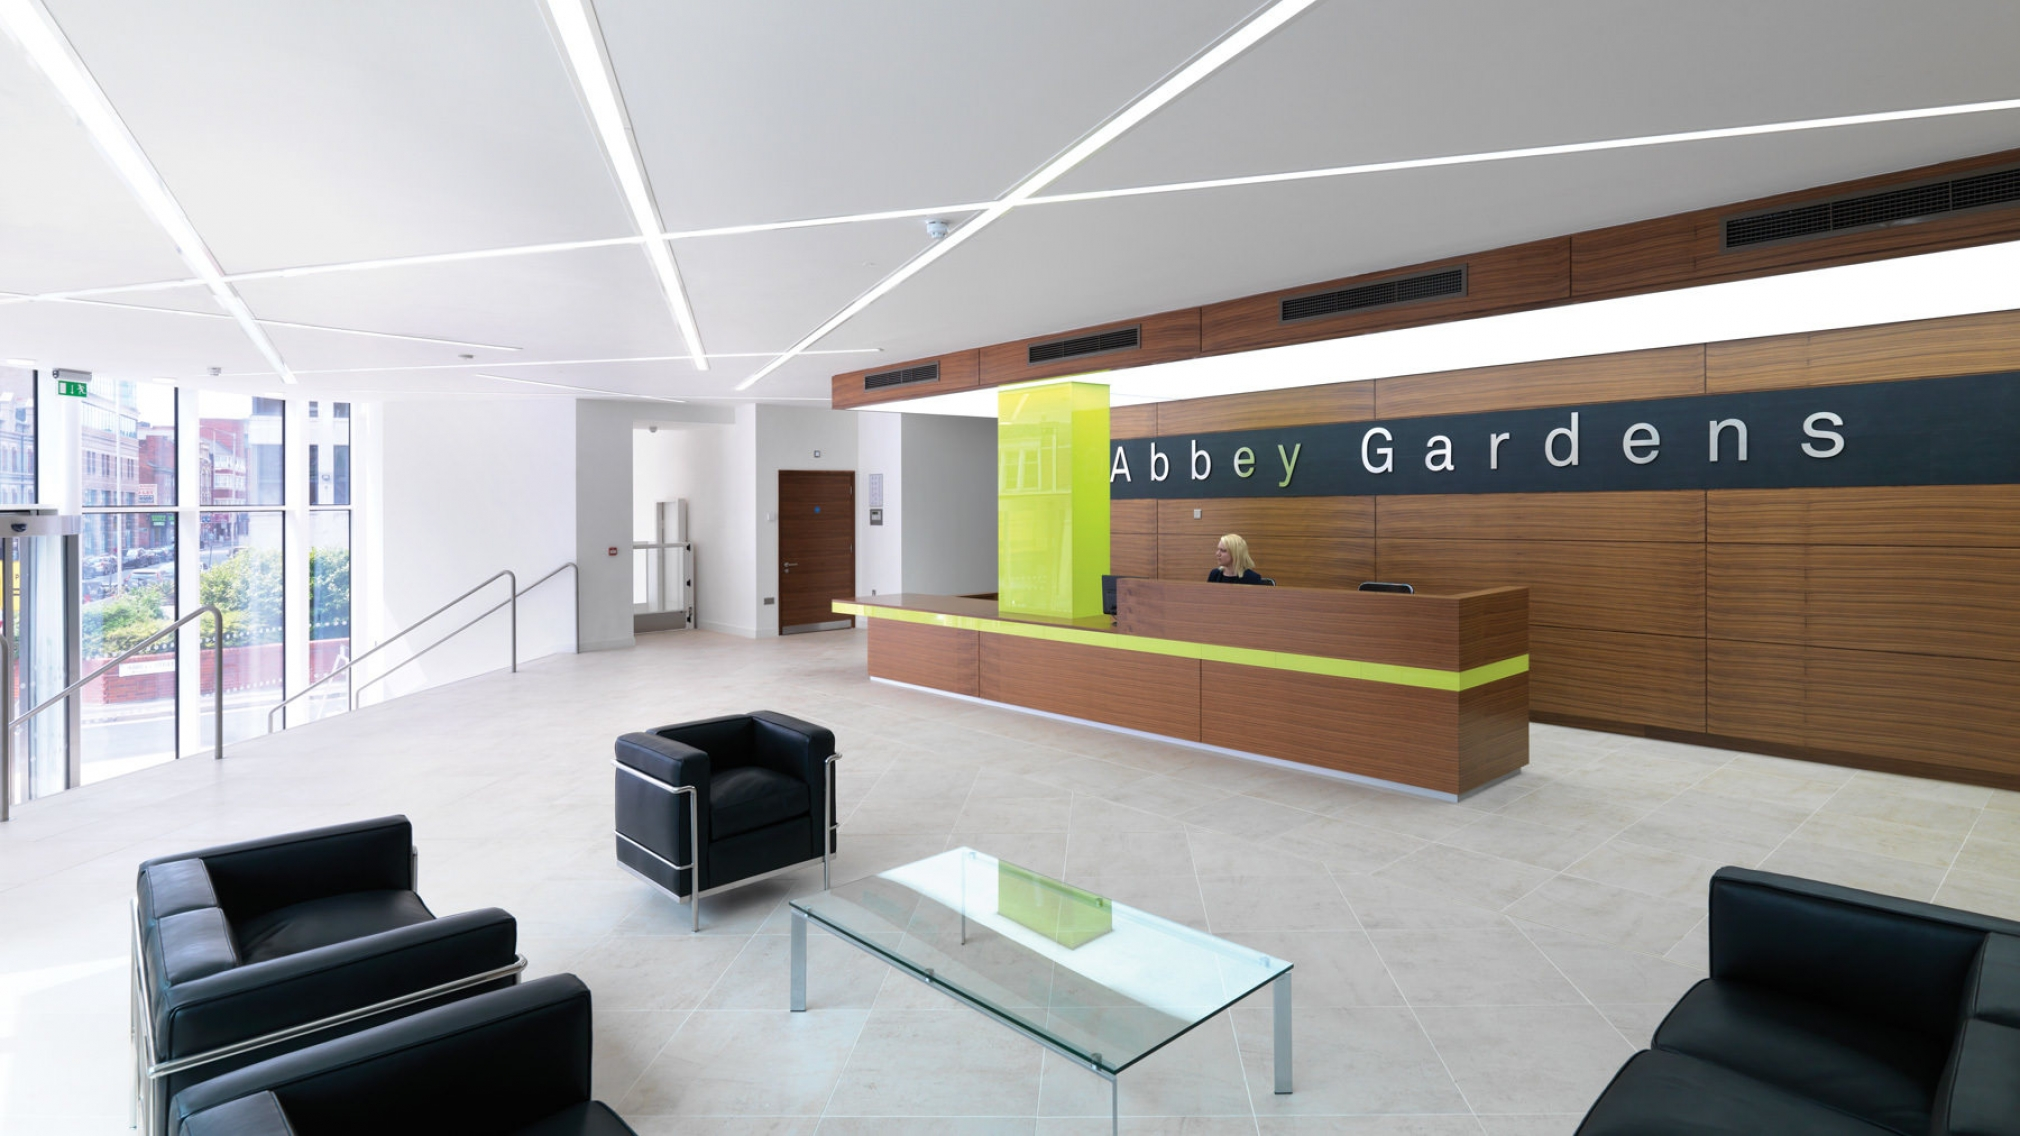 Abbey Gardens gallery image